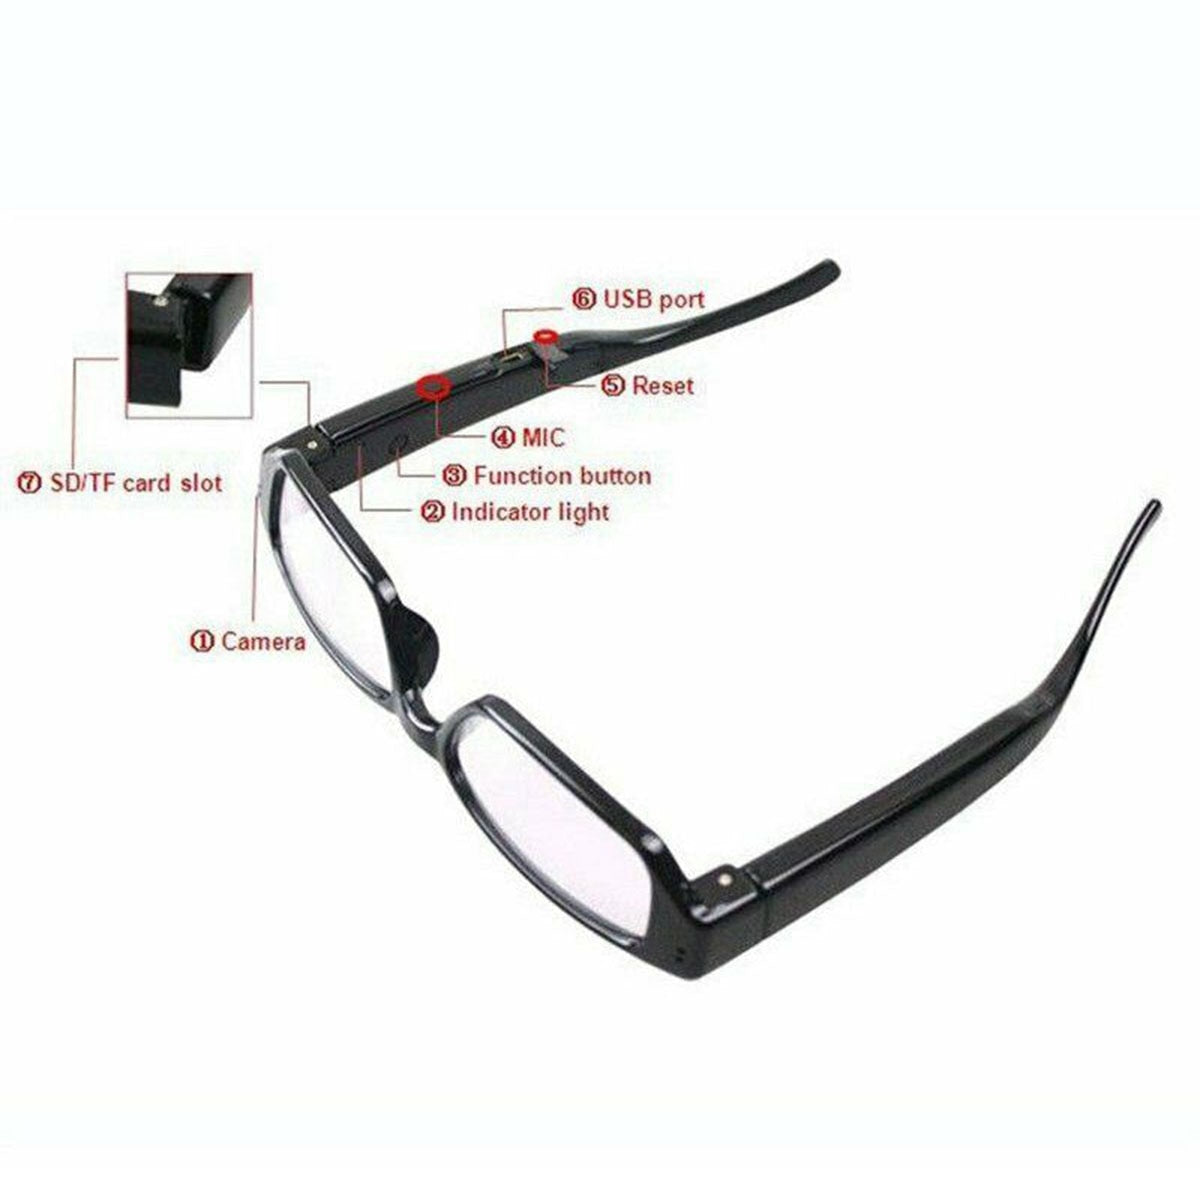 Glasses That Record Video And Audio